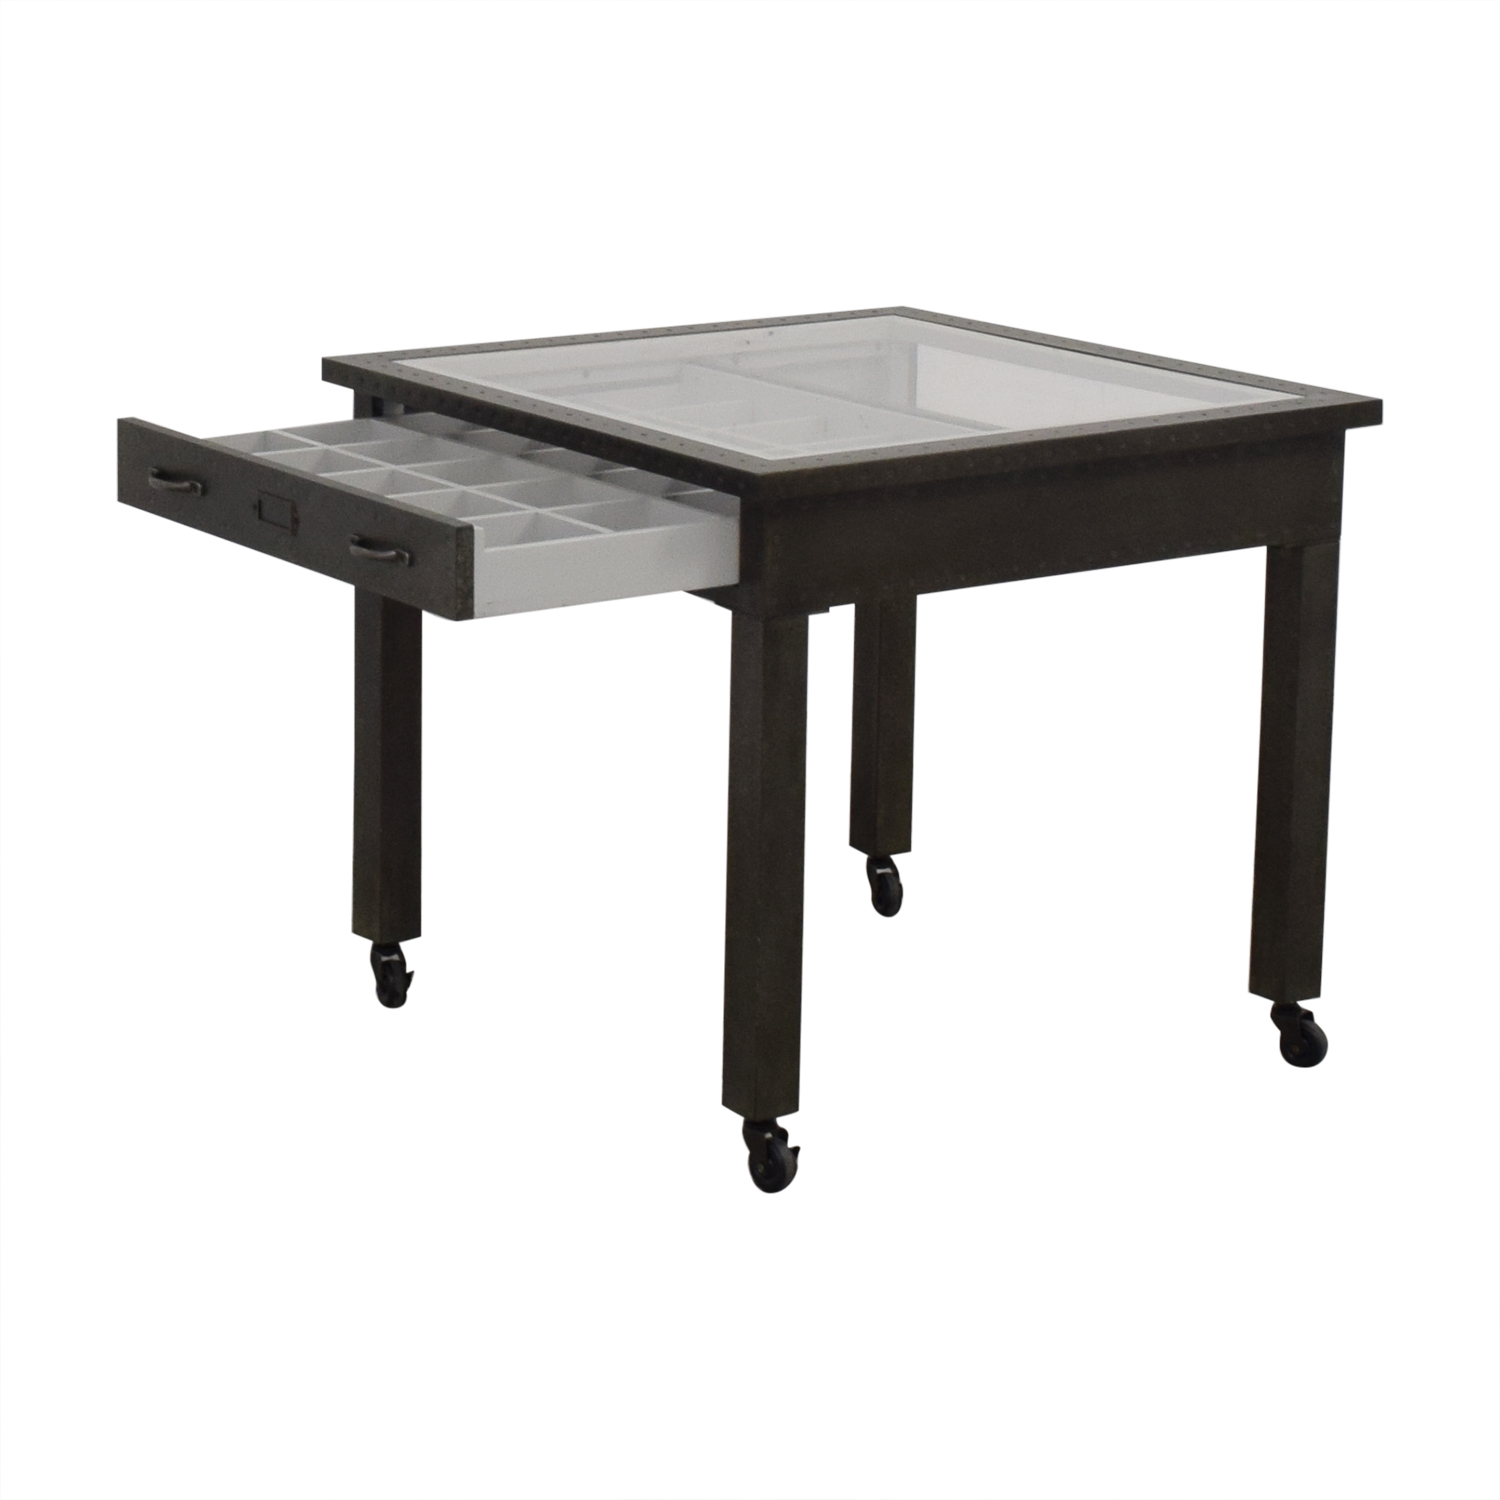 Restoration Hardware Restoration Hardware Vintage Curator Play Table dimensions